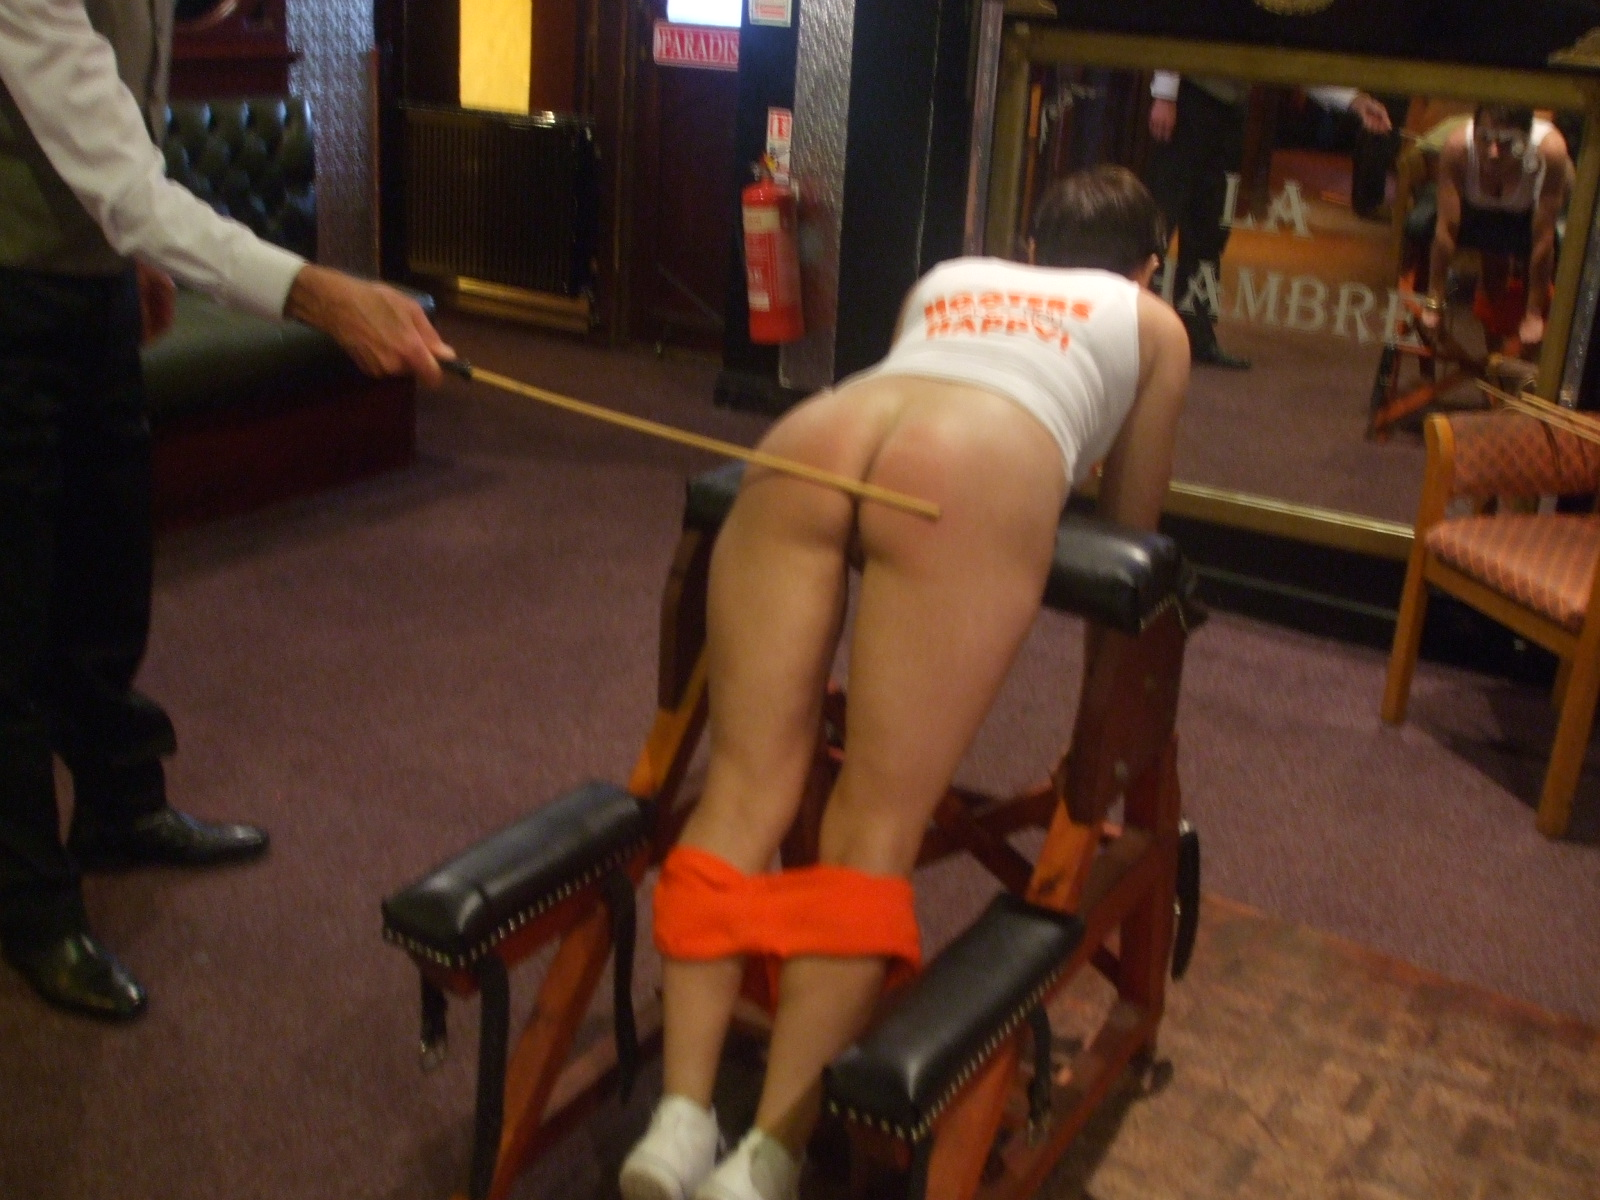 central spanking parties